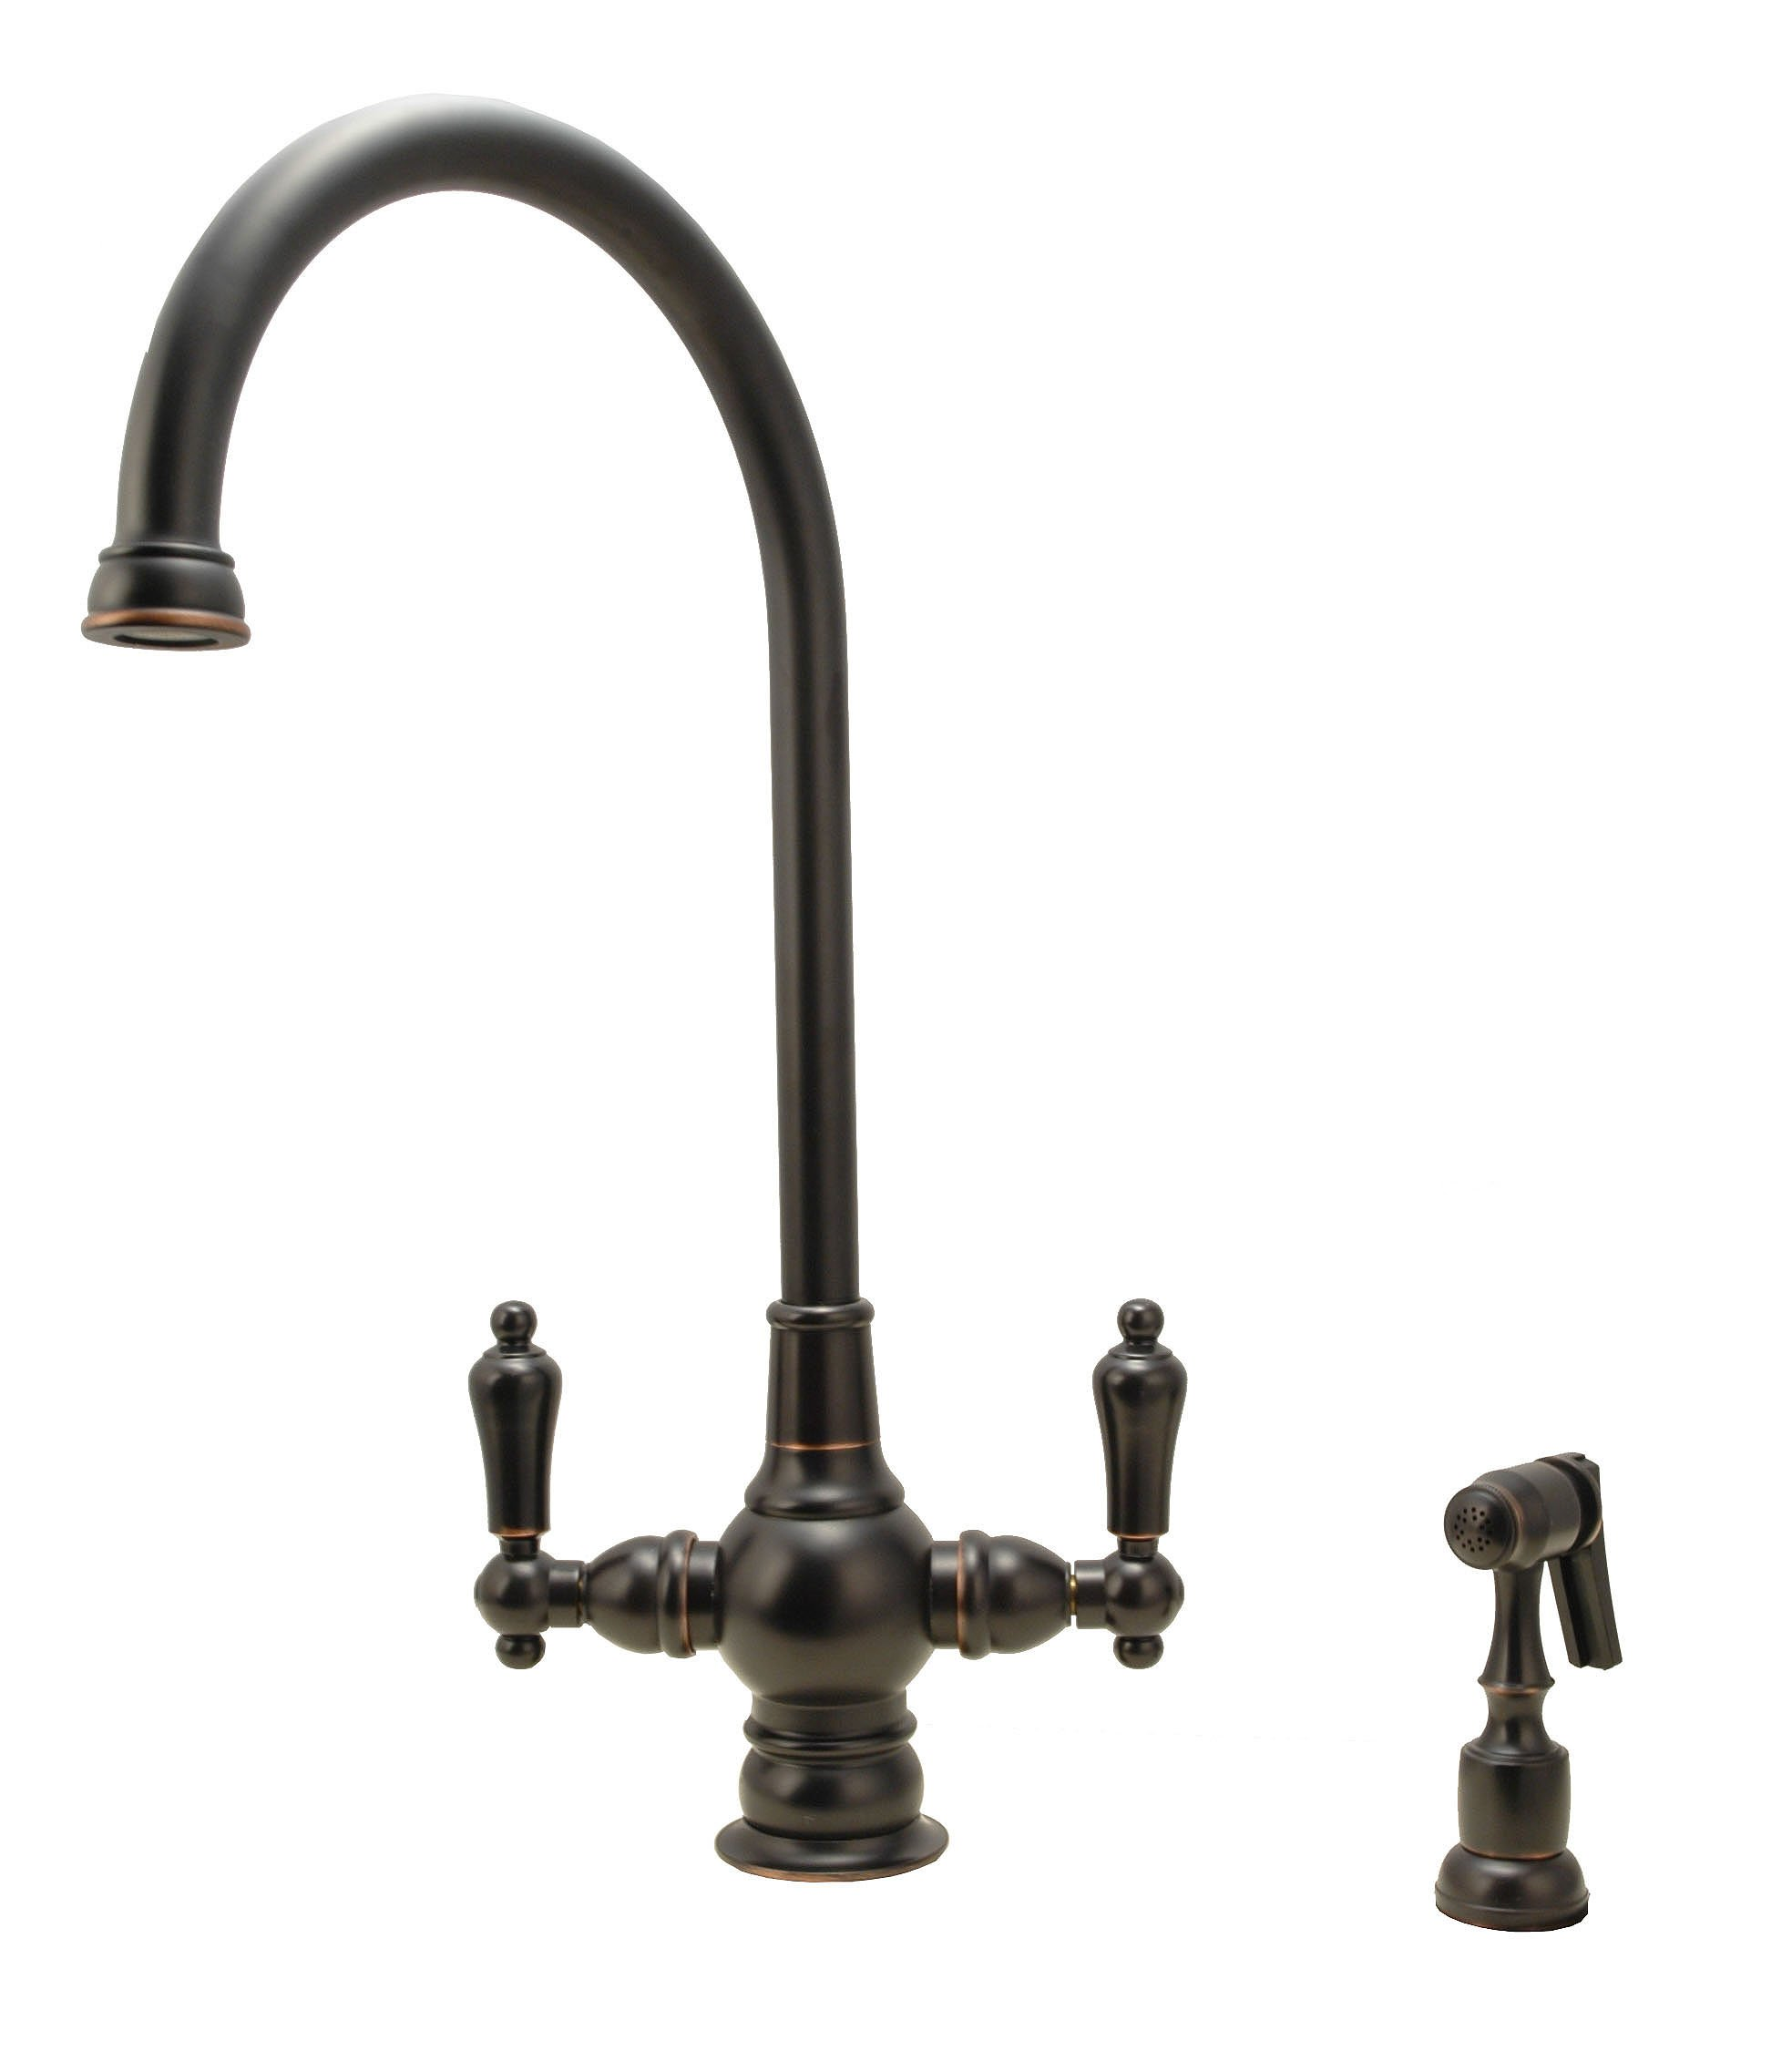 Kitchen Sink Faucet, Oil Rubbed Bronze Finish, Two-hole Installation - By Plumb USA 35295